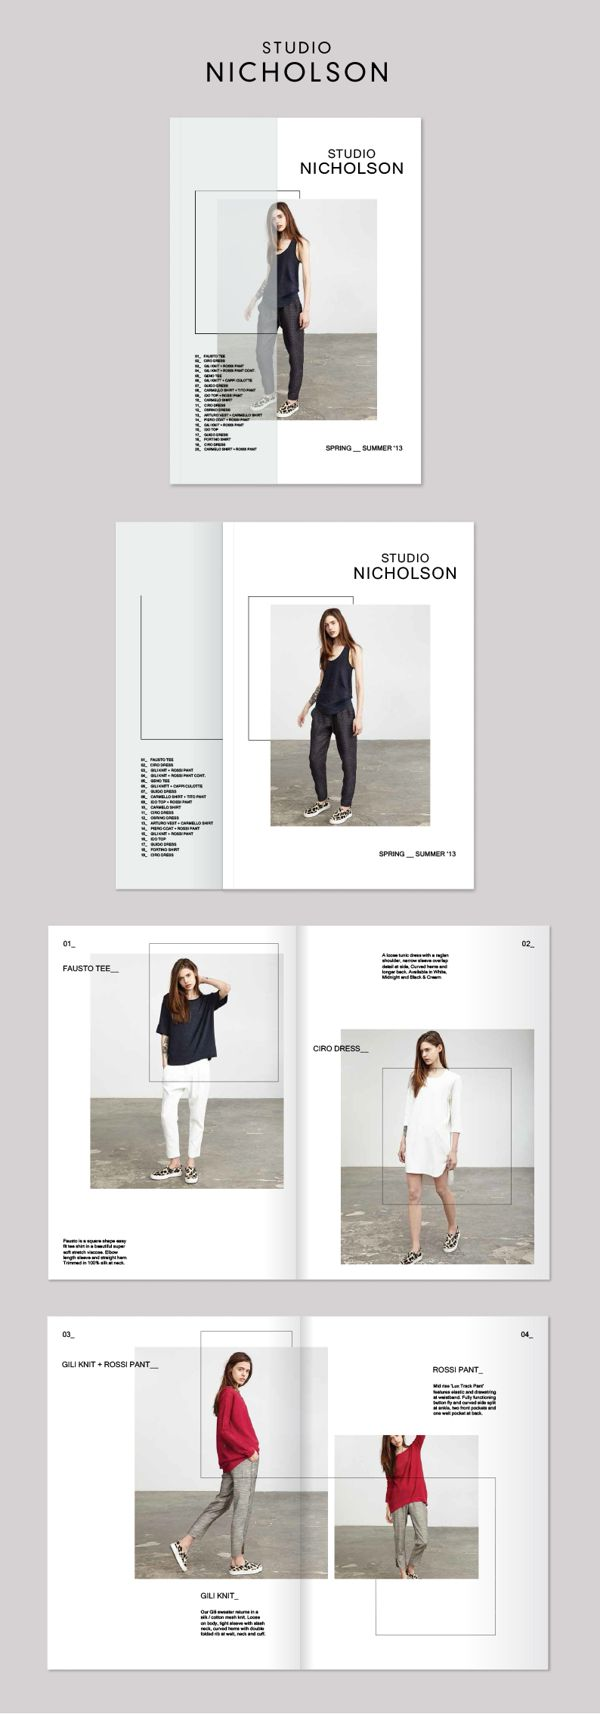 Studio Nicholson Lookbook by Rebecca Moores, via Behance